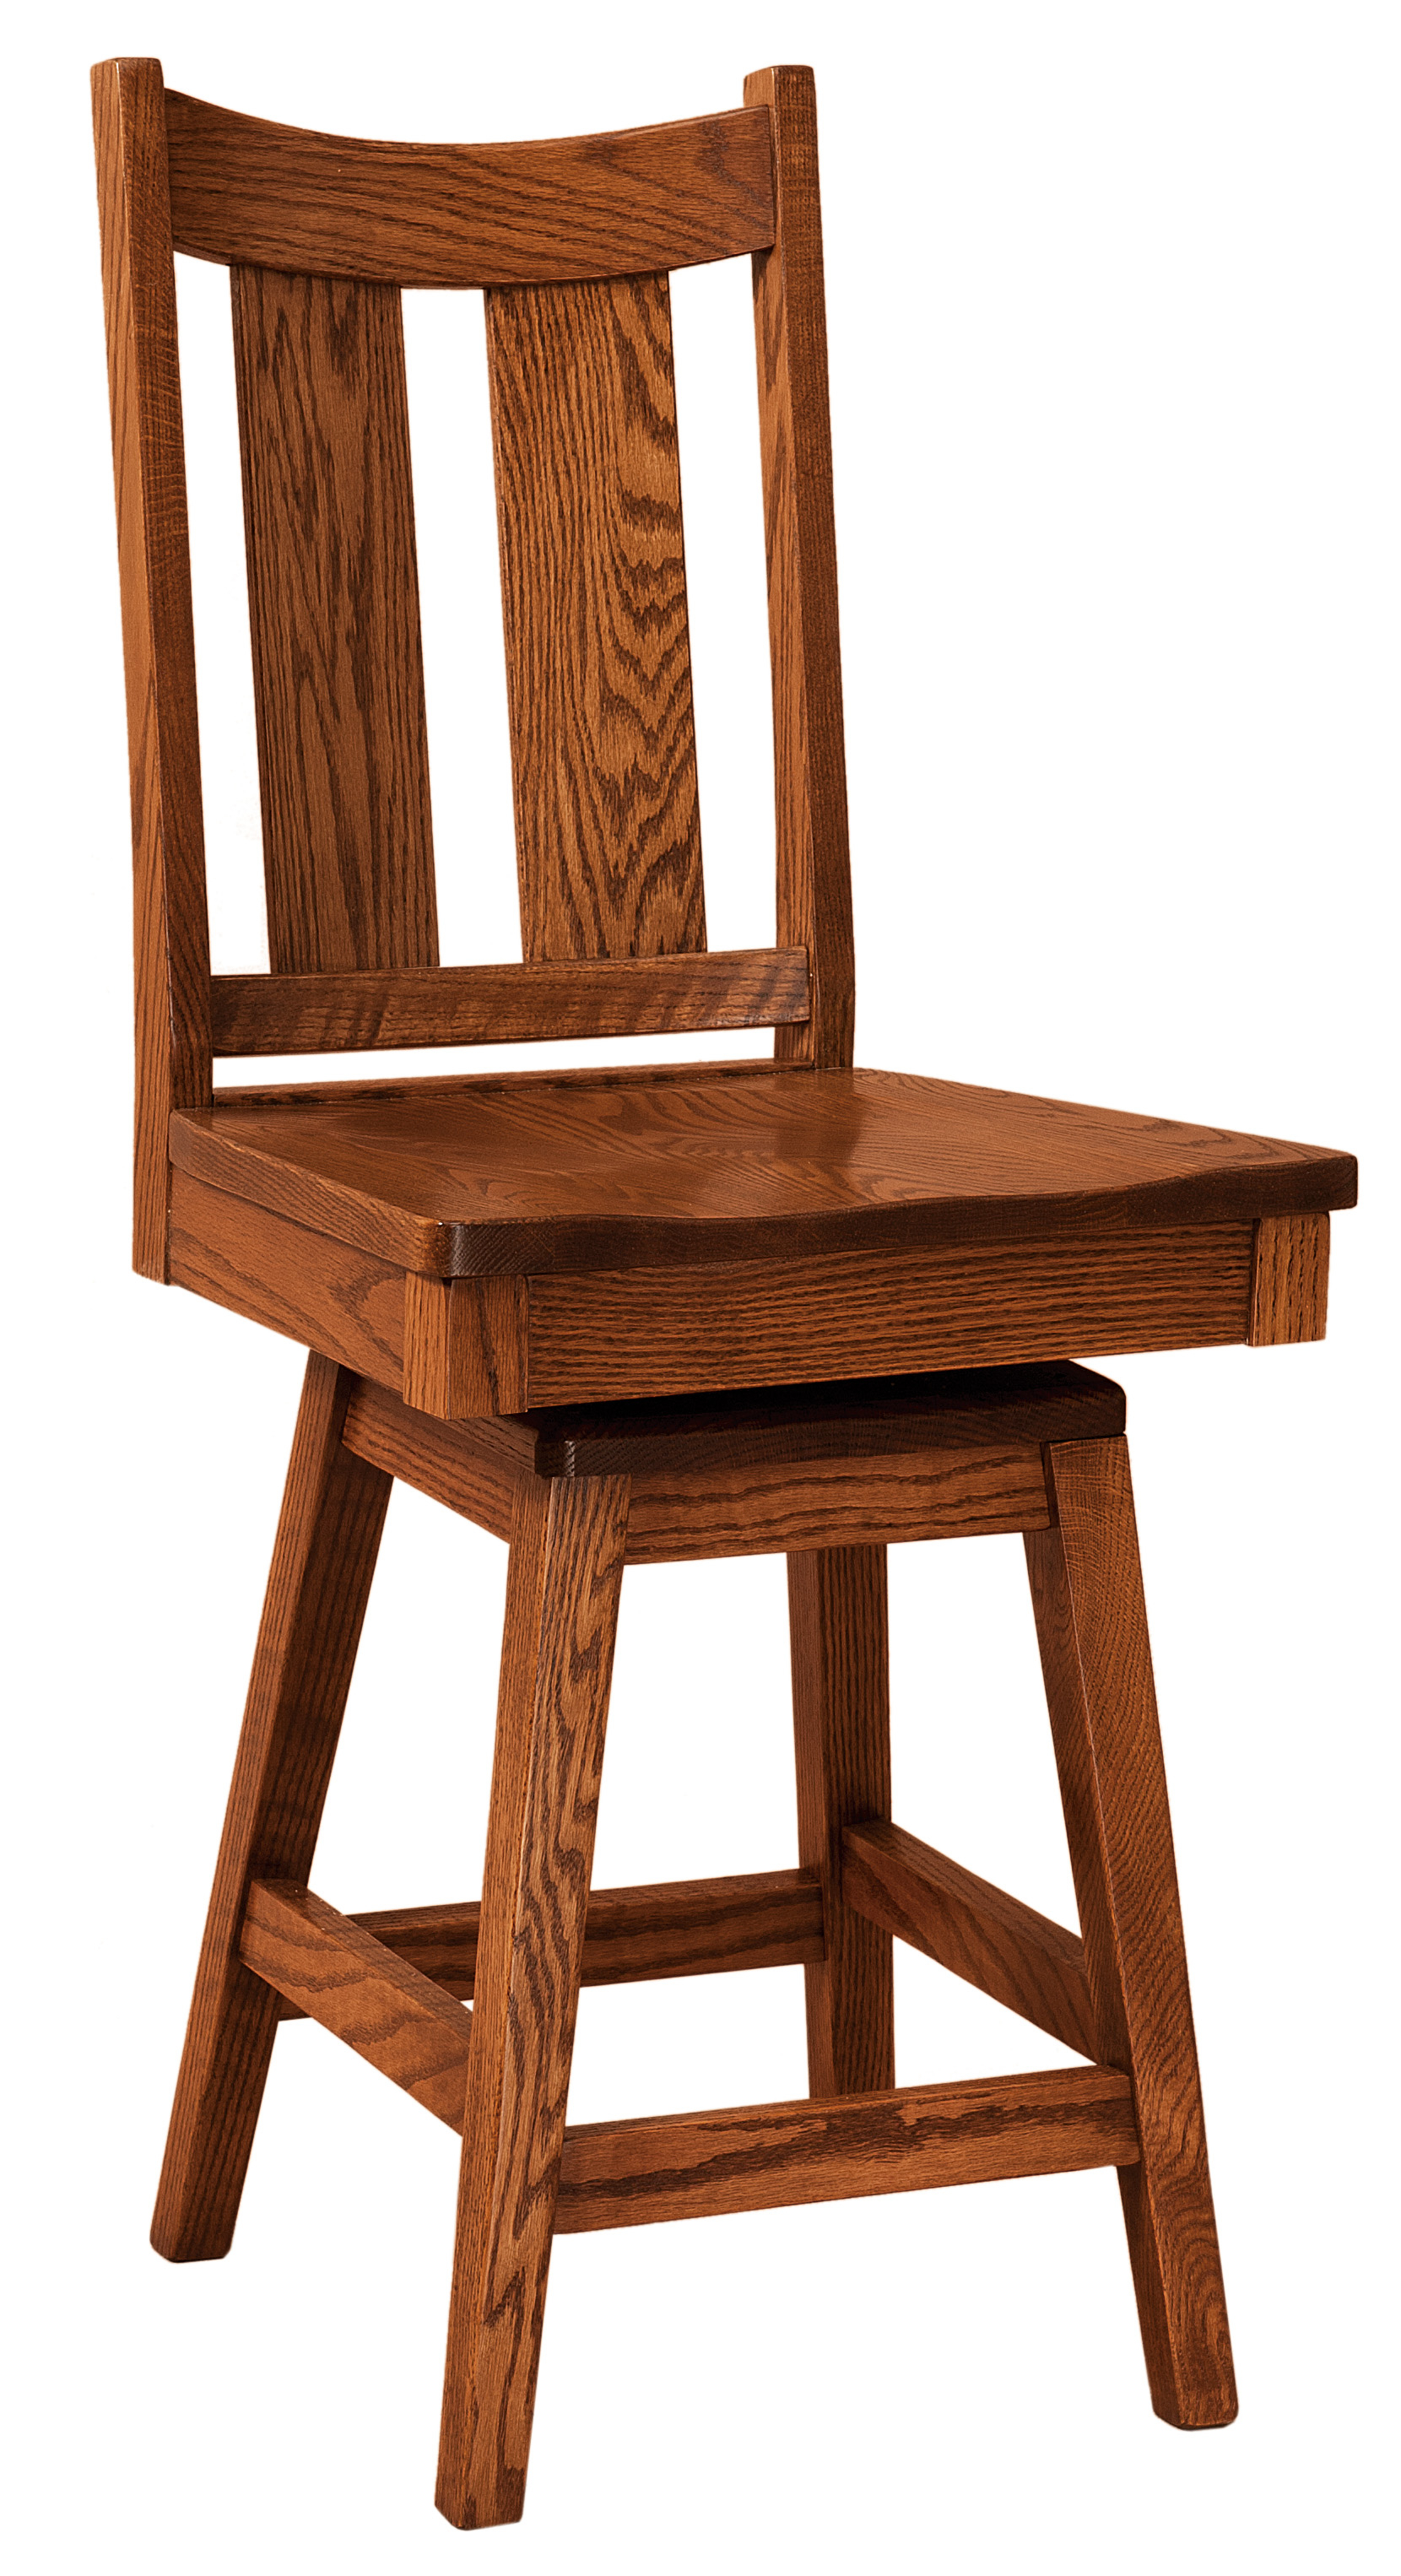 F&n Woodworking Aspen Swivel Bar Stool Within Aspen Swivel Chairs (Image 10 of 20)